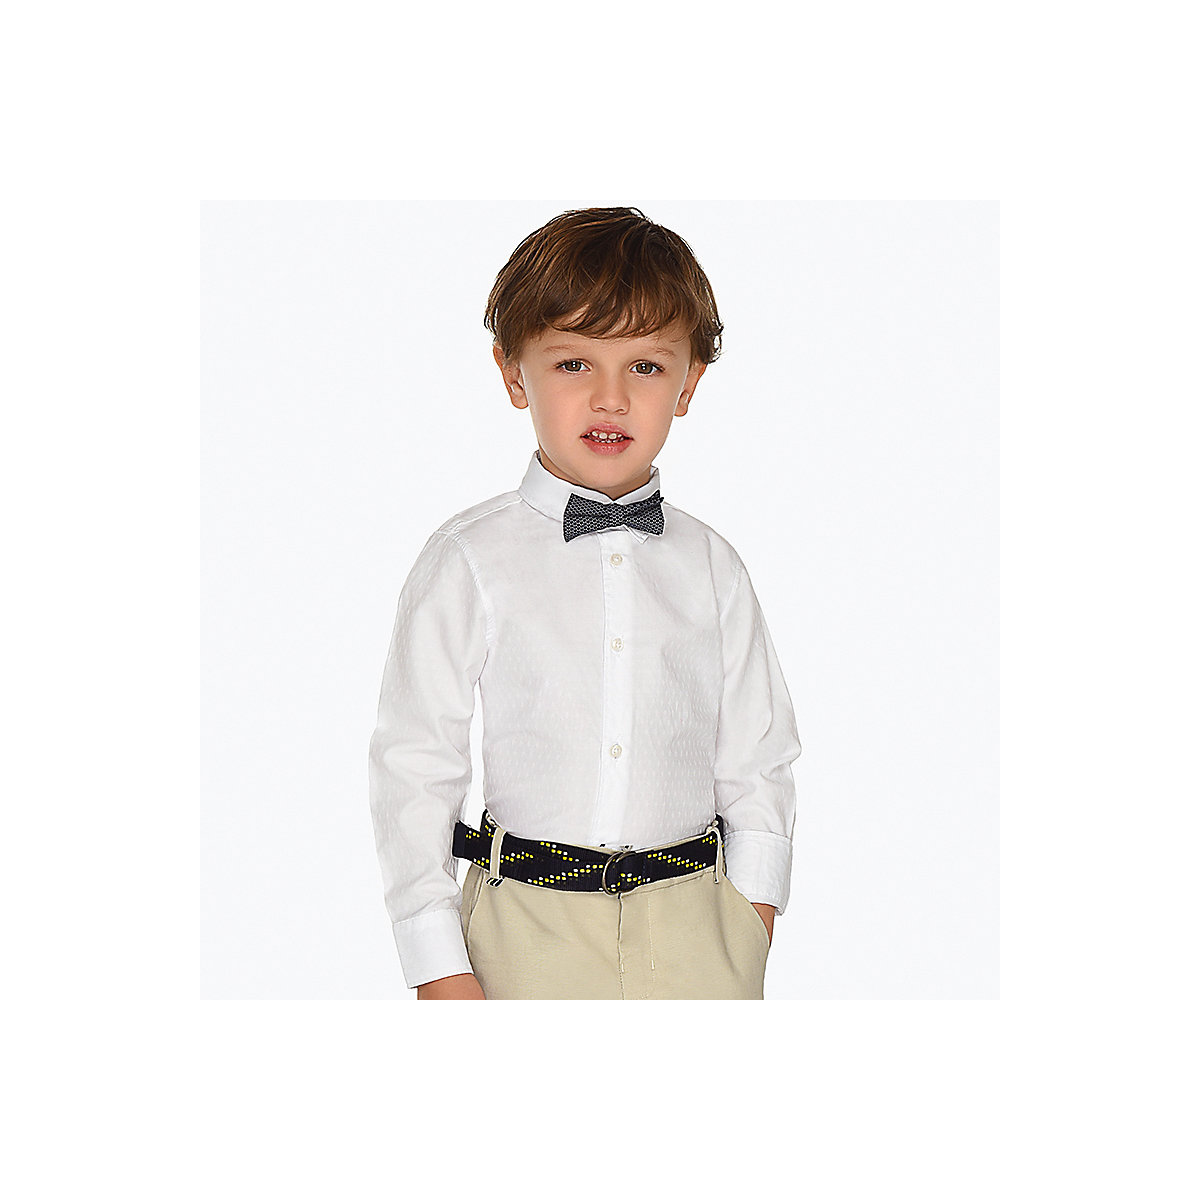 Blouses & Shirts MAYORAL 10691092 Children s Clothing shirt with long sleeve for a boy natural materials